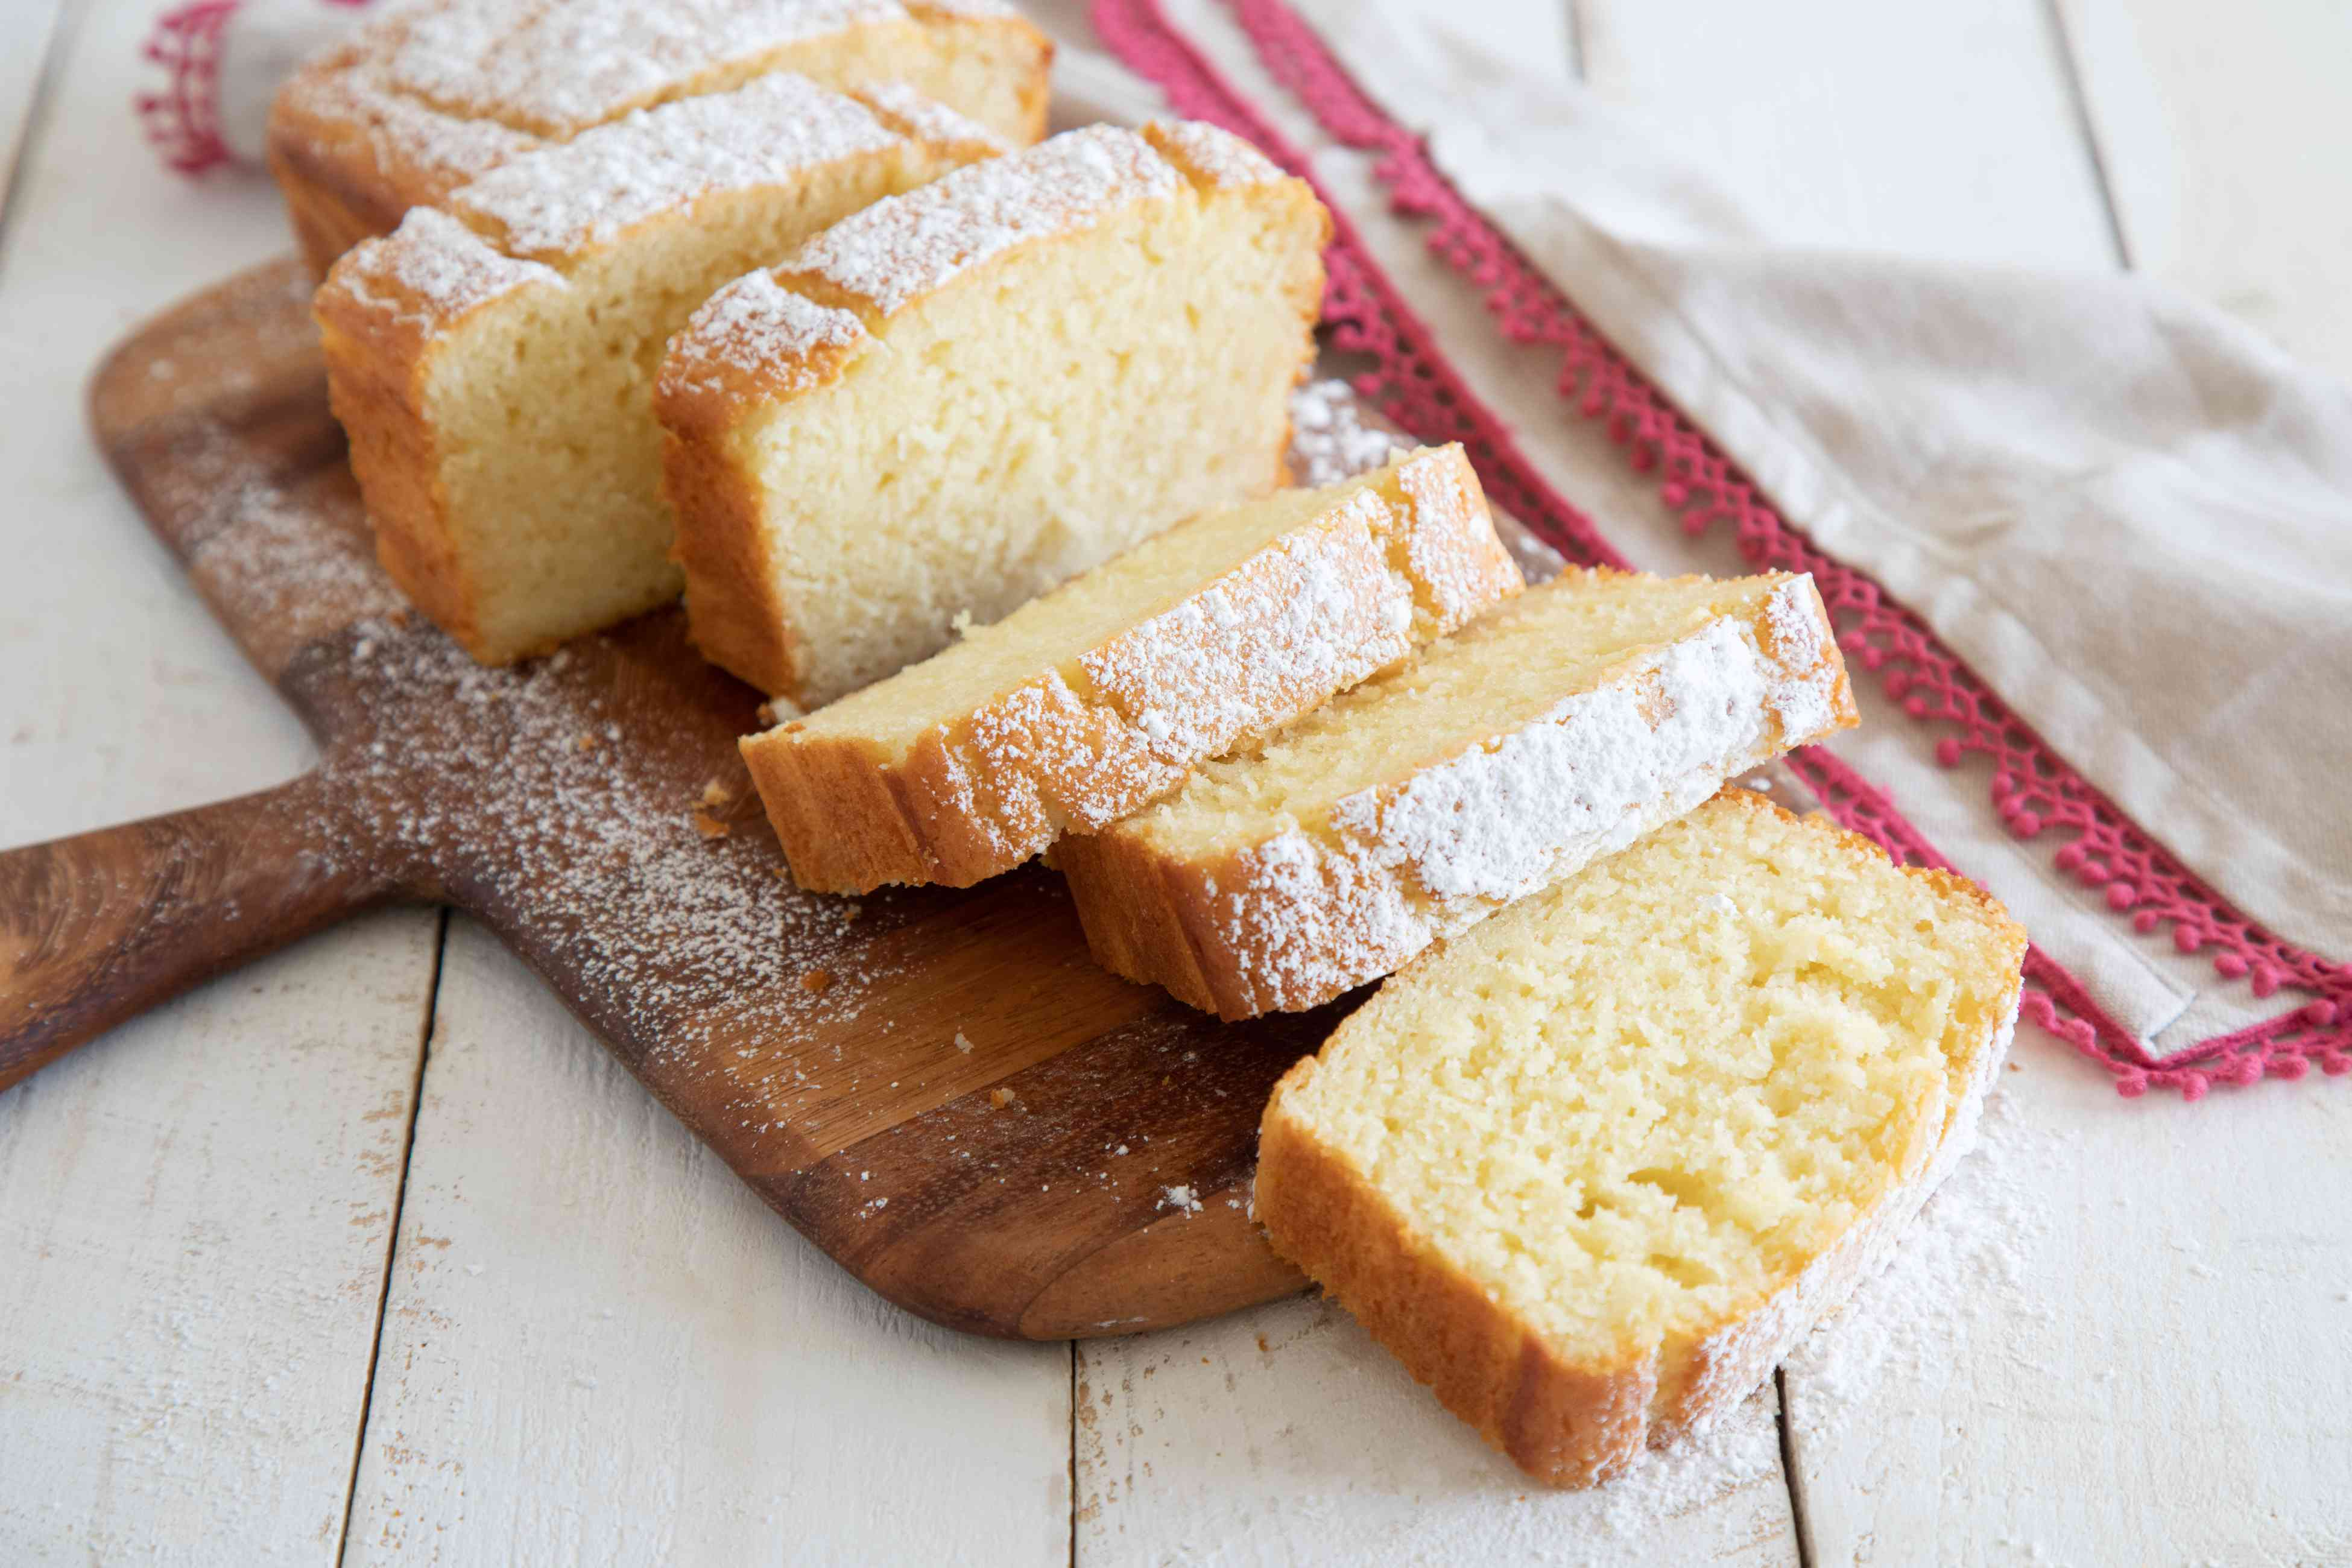 Slices of A slice of Olive Oil Yogurt Cake on a wooden paddle and dusted with powdered sugar.